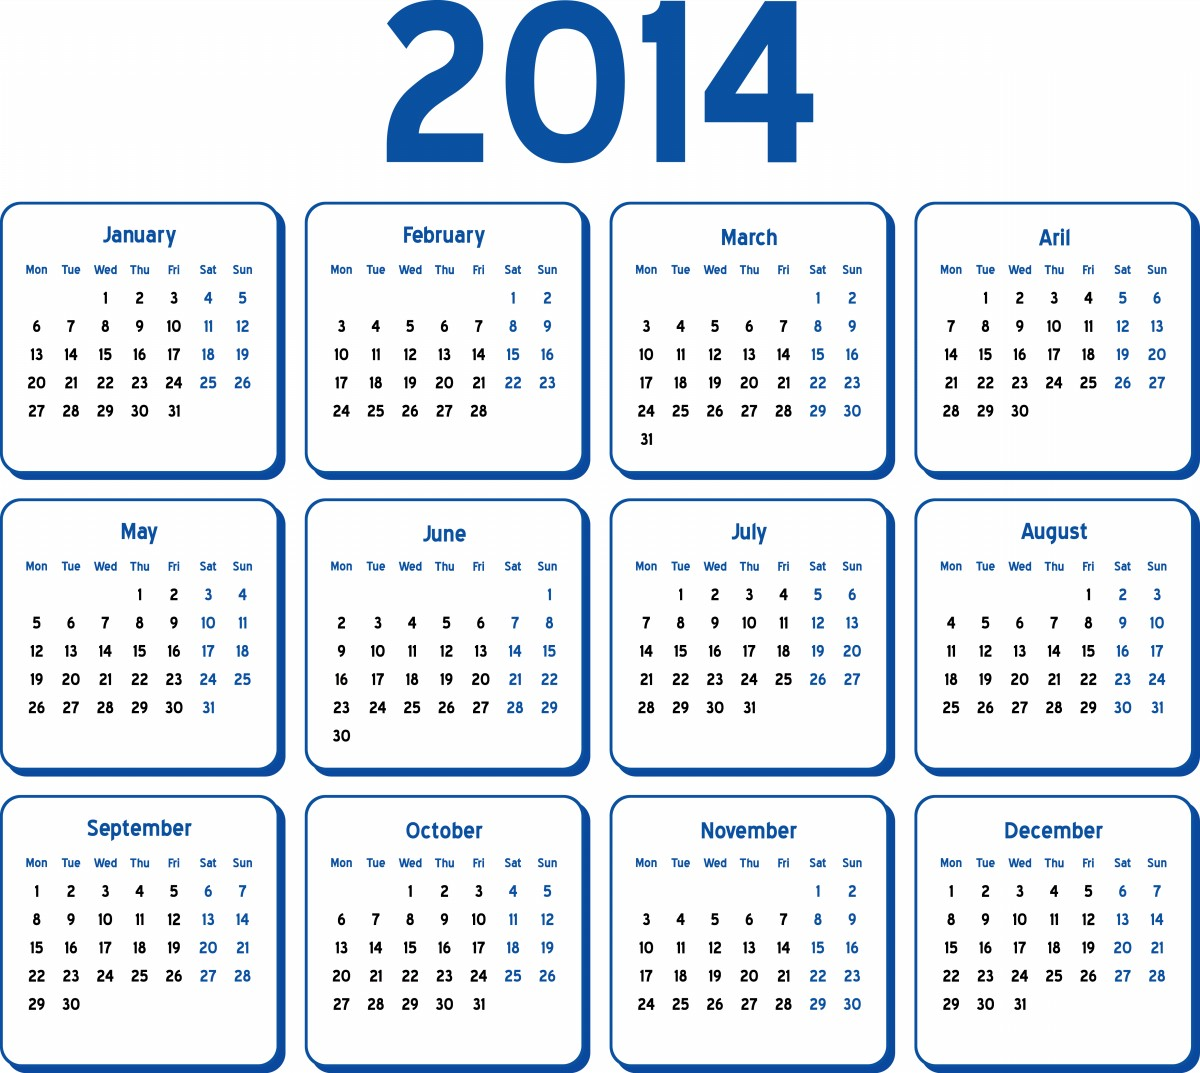 2014 Printable Calendar One Page Résultats d'AOL Image Search